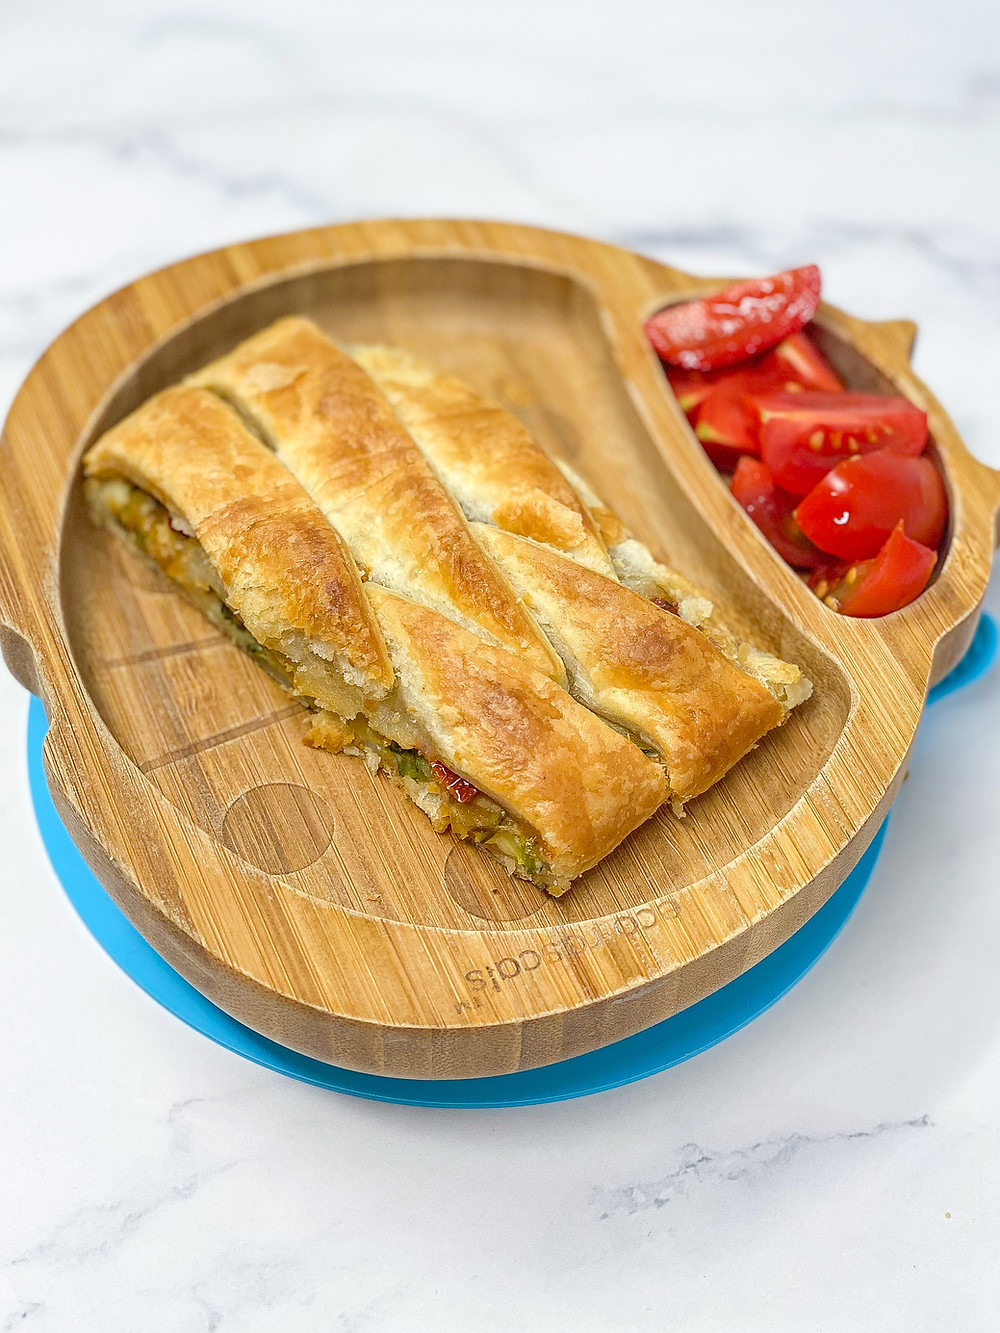 COURGETTES, CHEESE & TOMATOES PUFF PASTRY BRAID